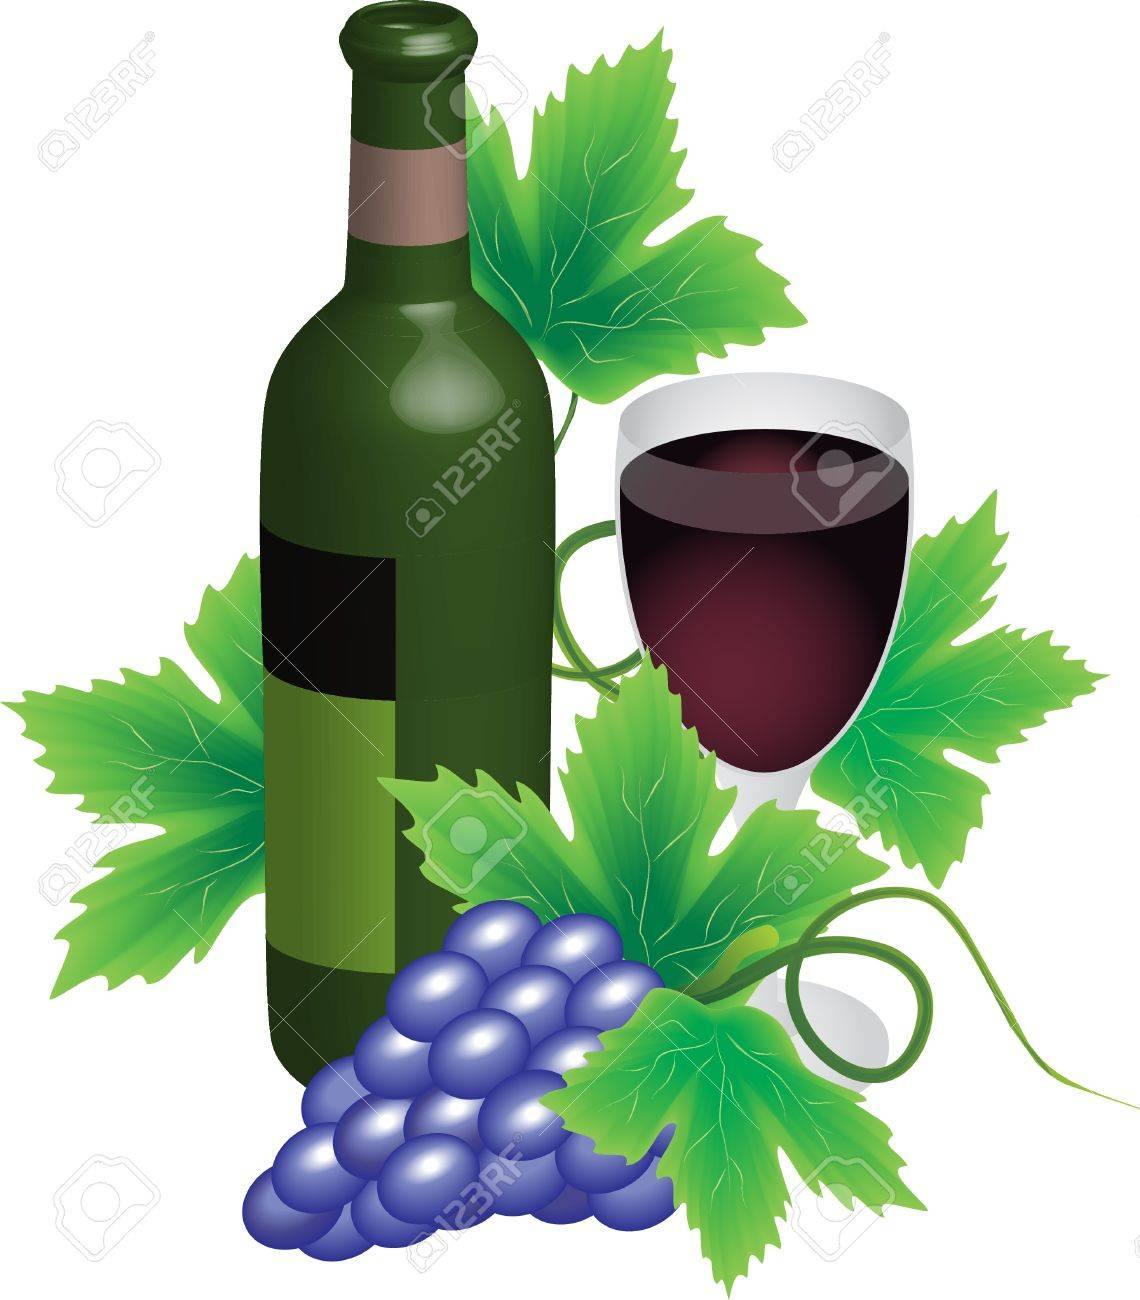 Bottle and glass of red wine with grapes Stock Vector - 10426933